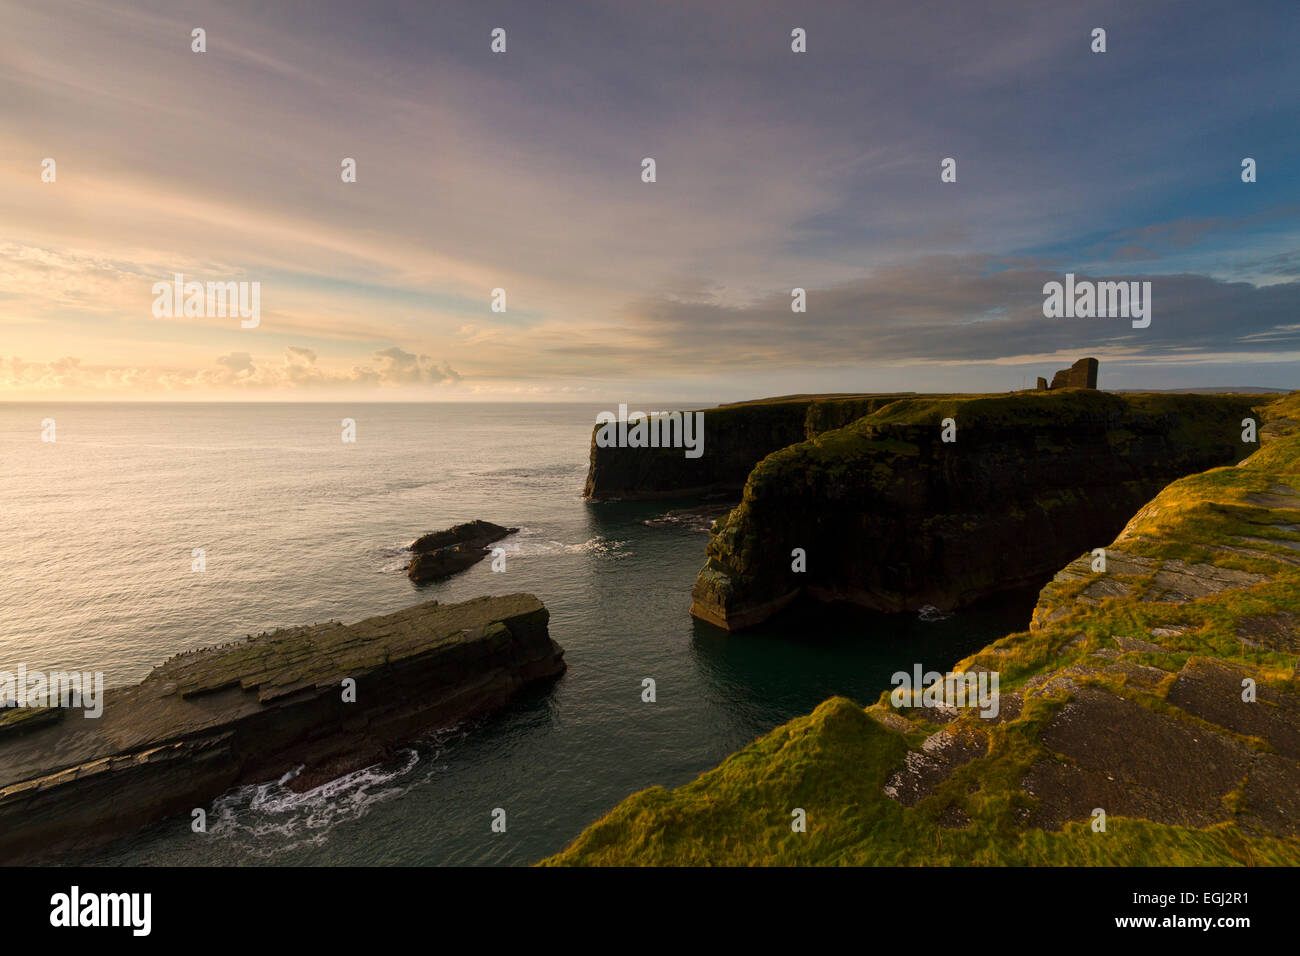 Castle of Old Wick, Caithness coast - Stock Image